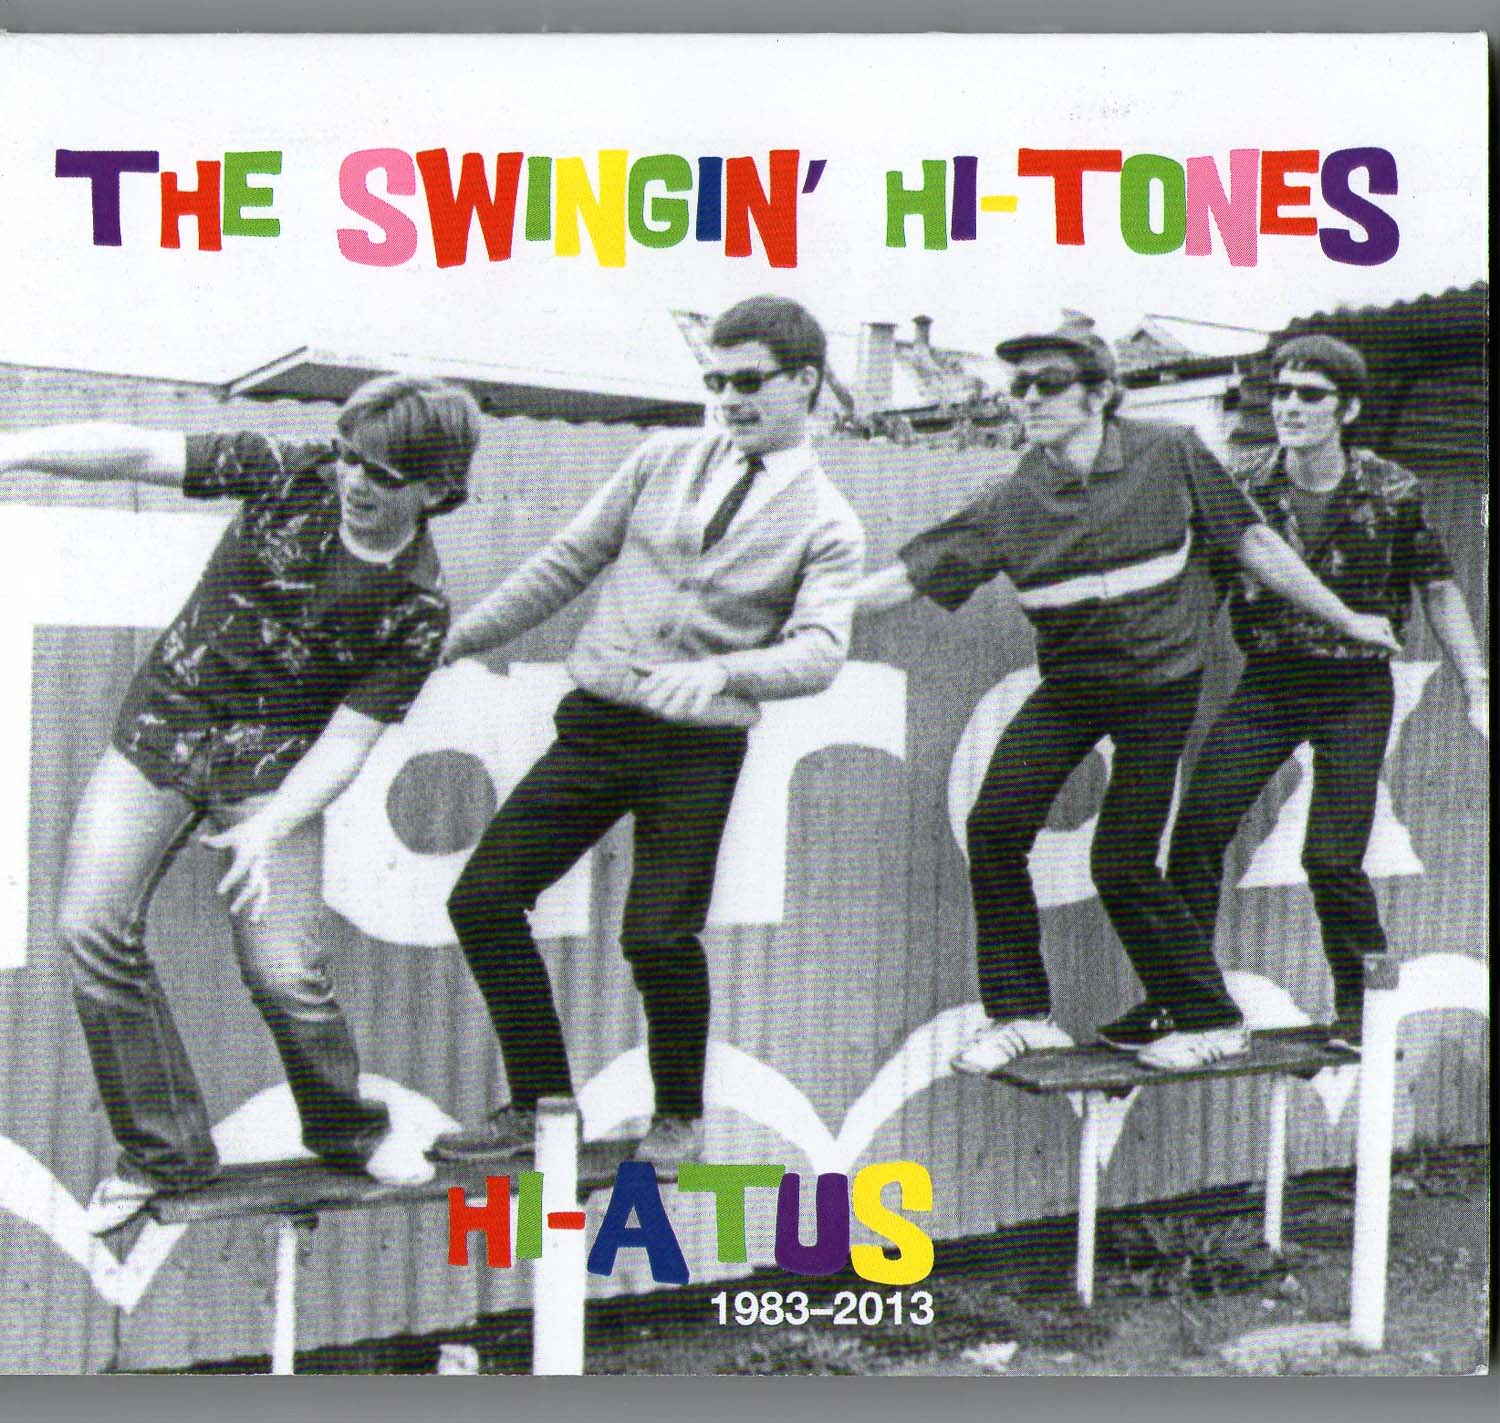 Front cover of the HI-ATUS album, available on CD, from The Swingin' Hi-Tones. Released in 2013 this album refreshed old Hi-Tones classics and showcased several new tunes from the Hi-Tones.